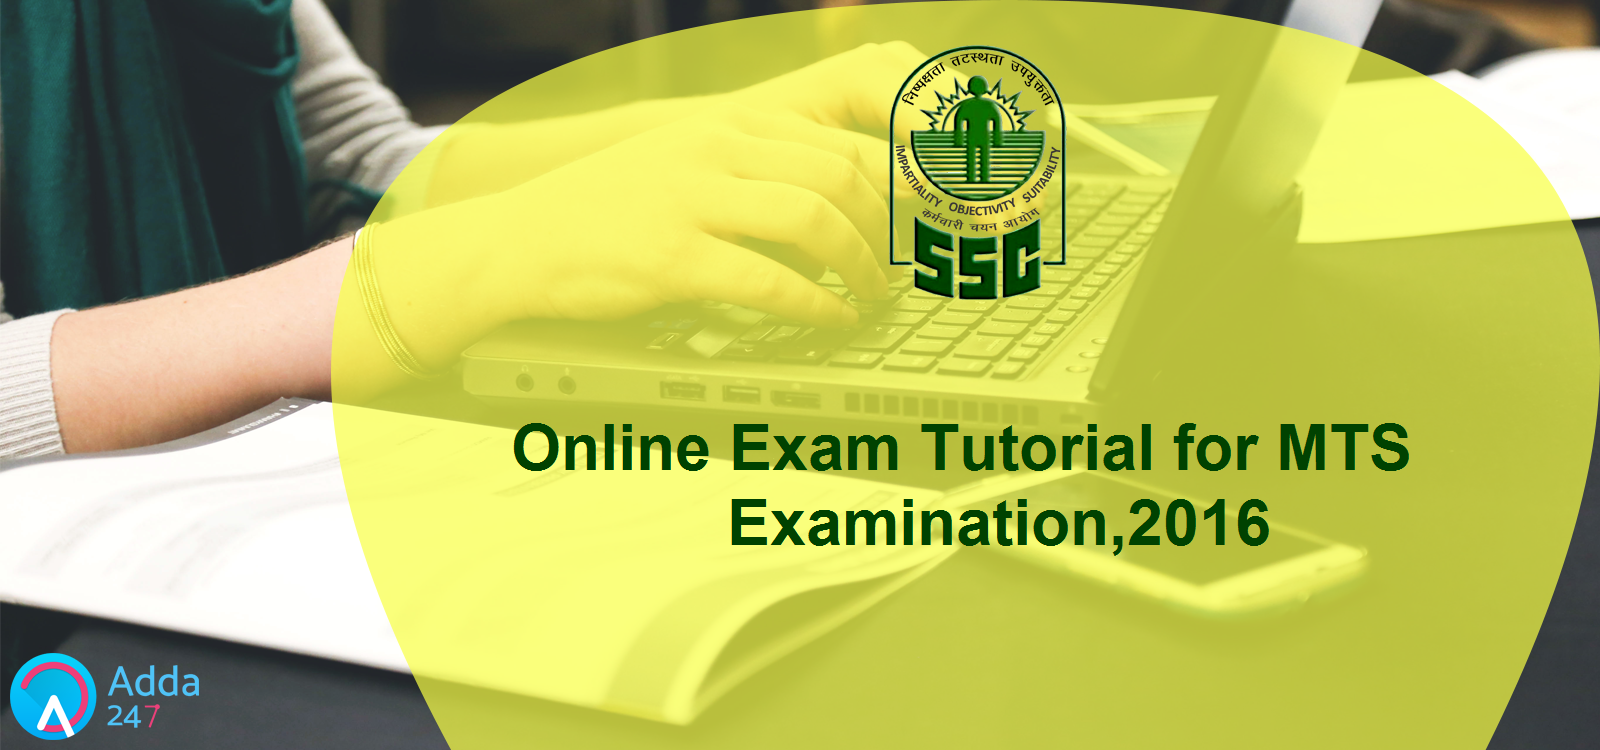 online exam Florida permit test - what to expect here's what to expect when taking your online permit exam you will be tested on road rules and road signs.